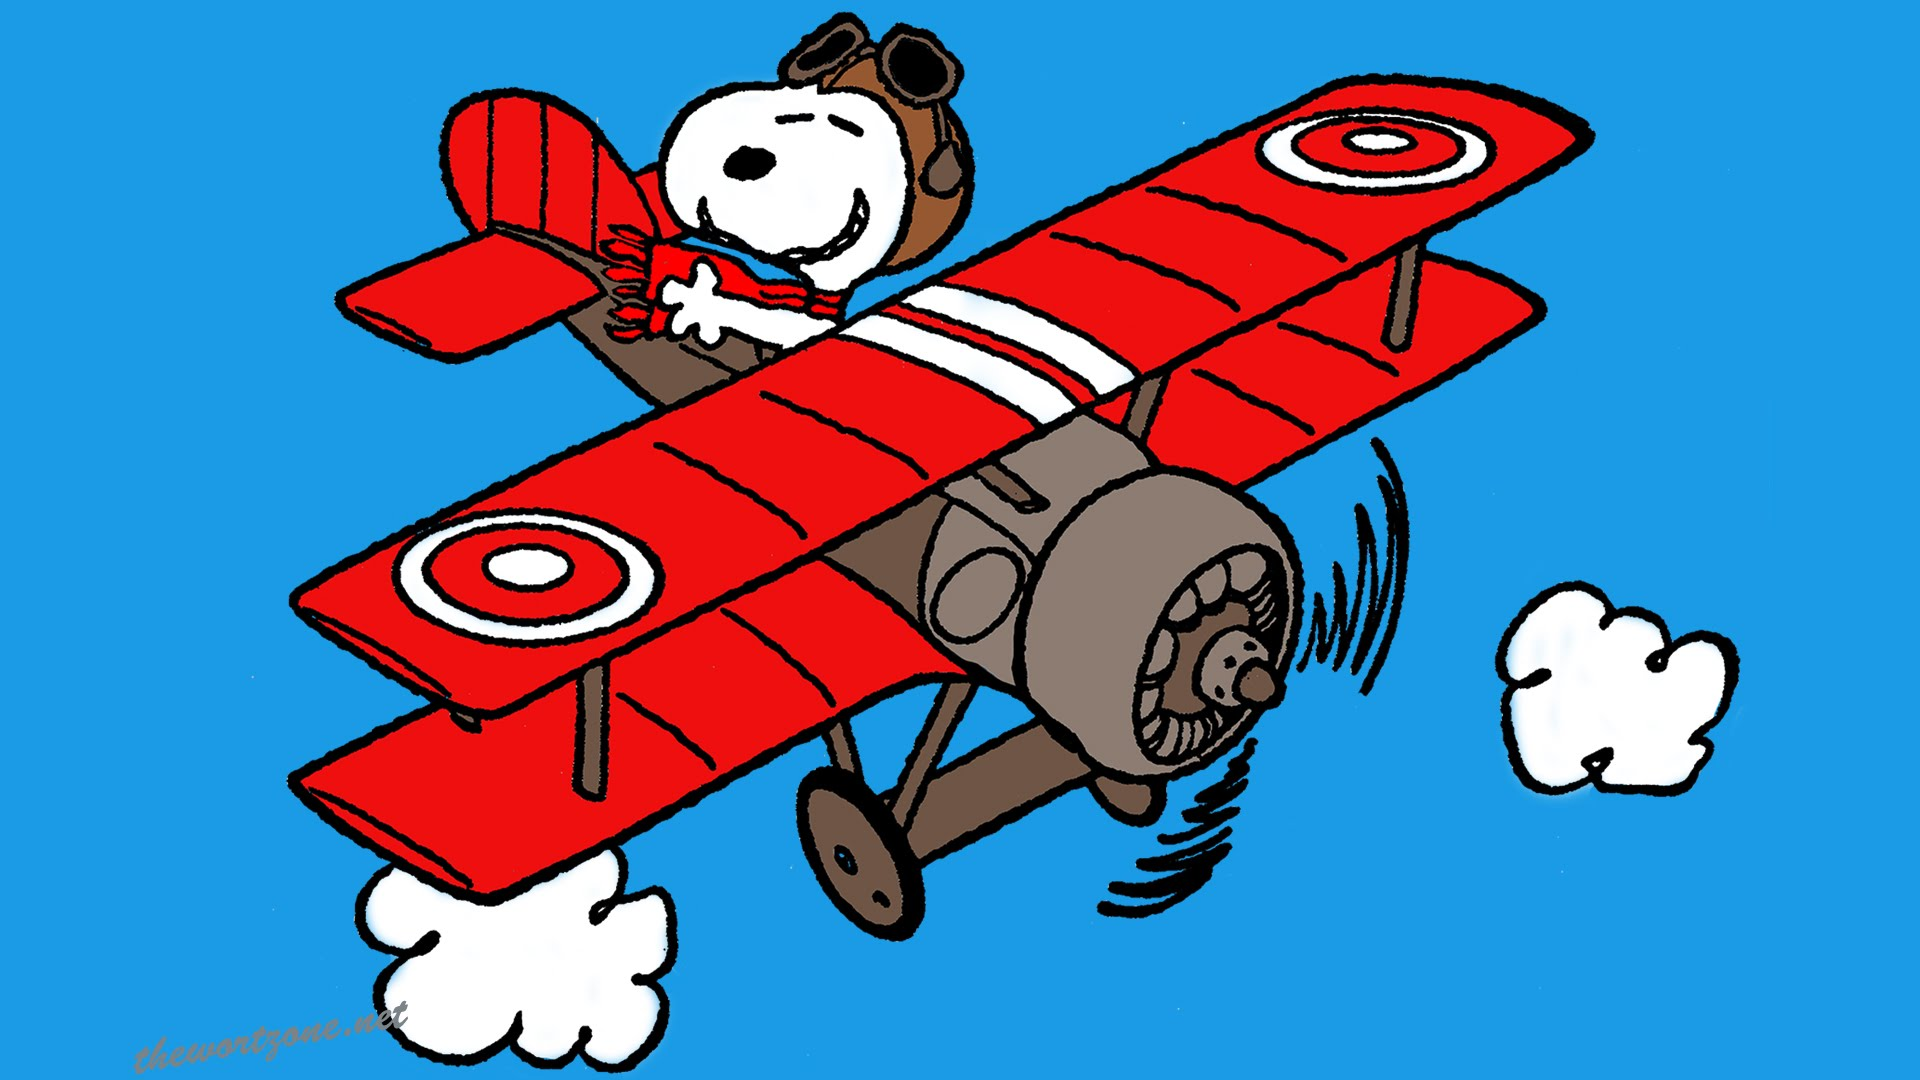 Snoopy clipart airplane Snoopy Snoopy  Charlie YouTube